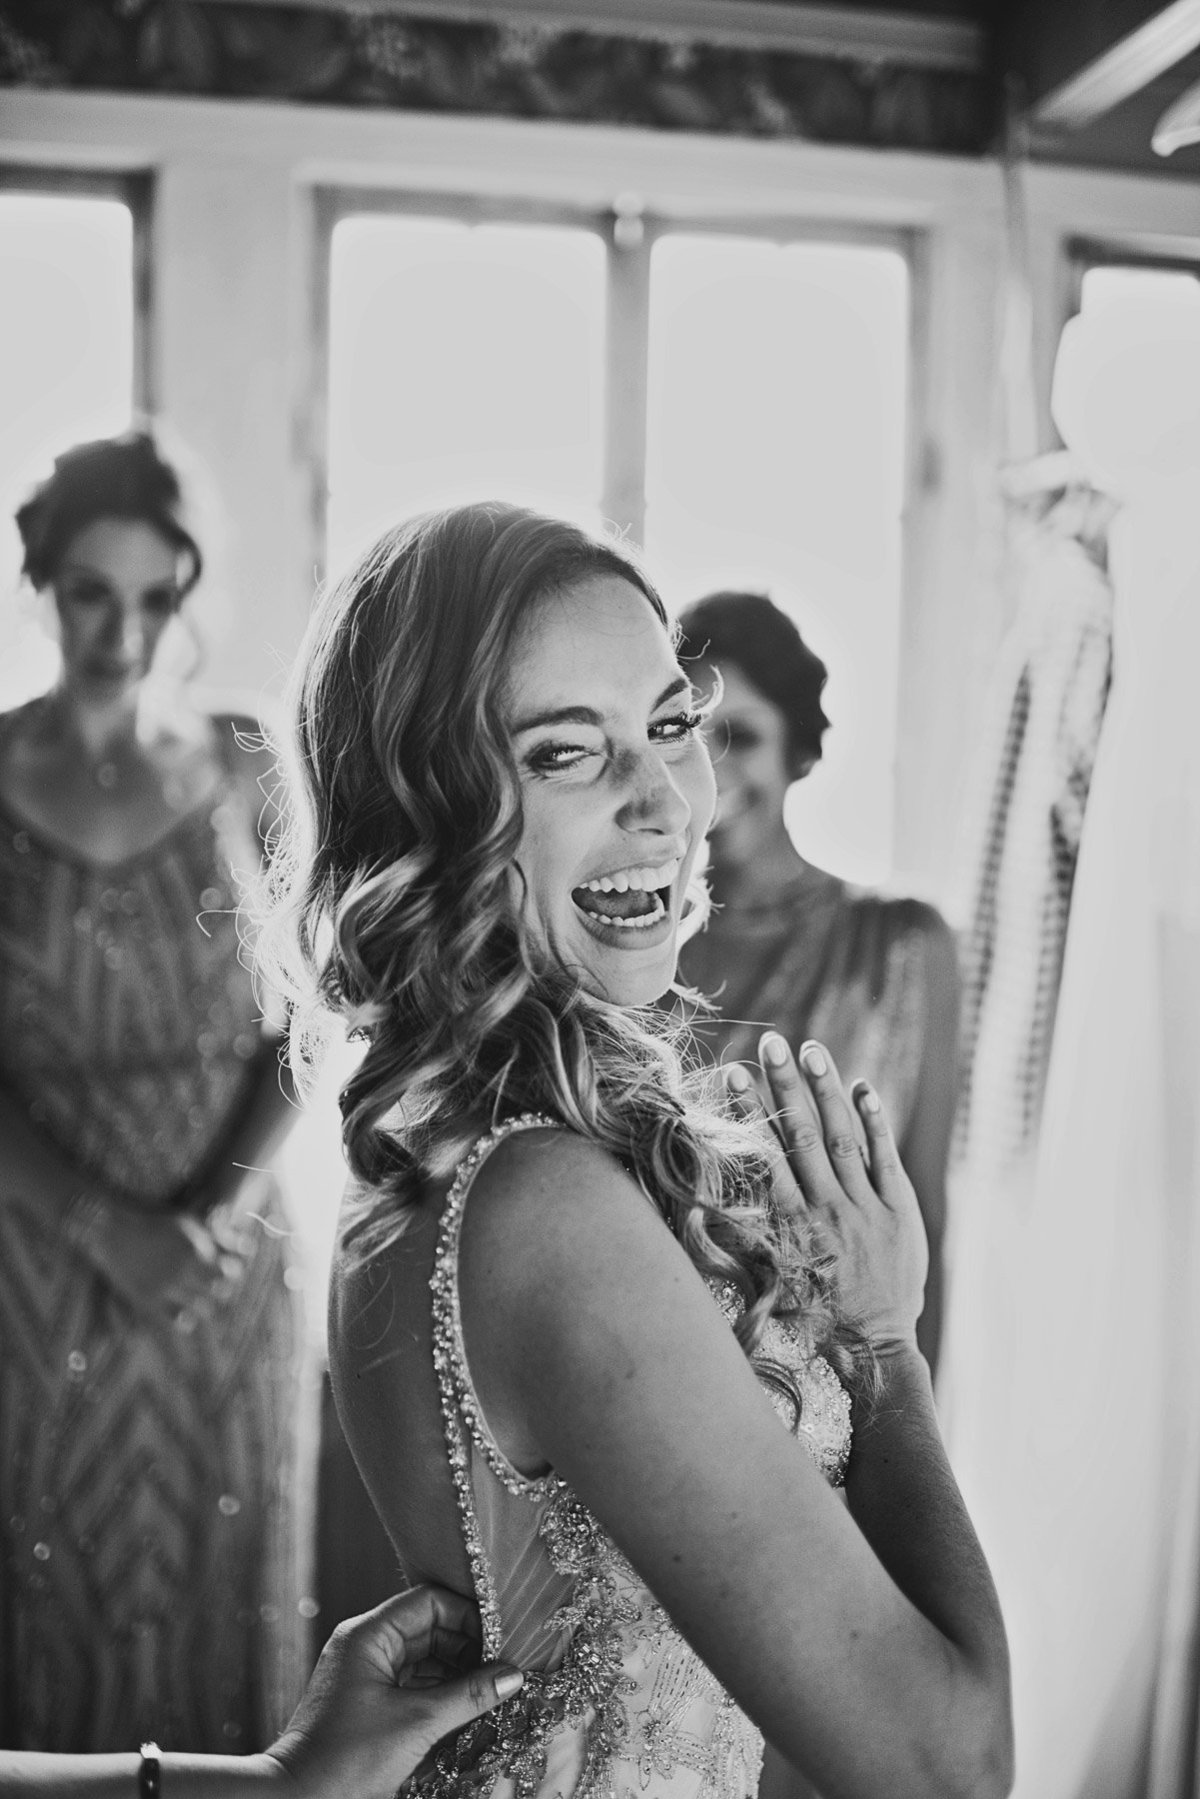 sundance studios wedding photos chicago wedding photographer bryan newfield photography 12